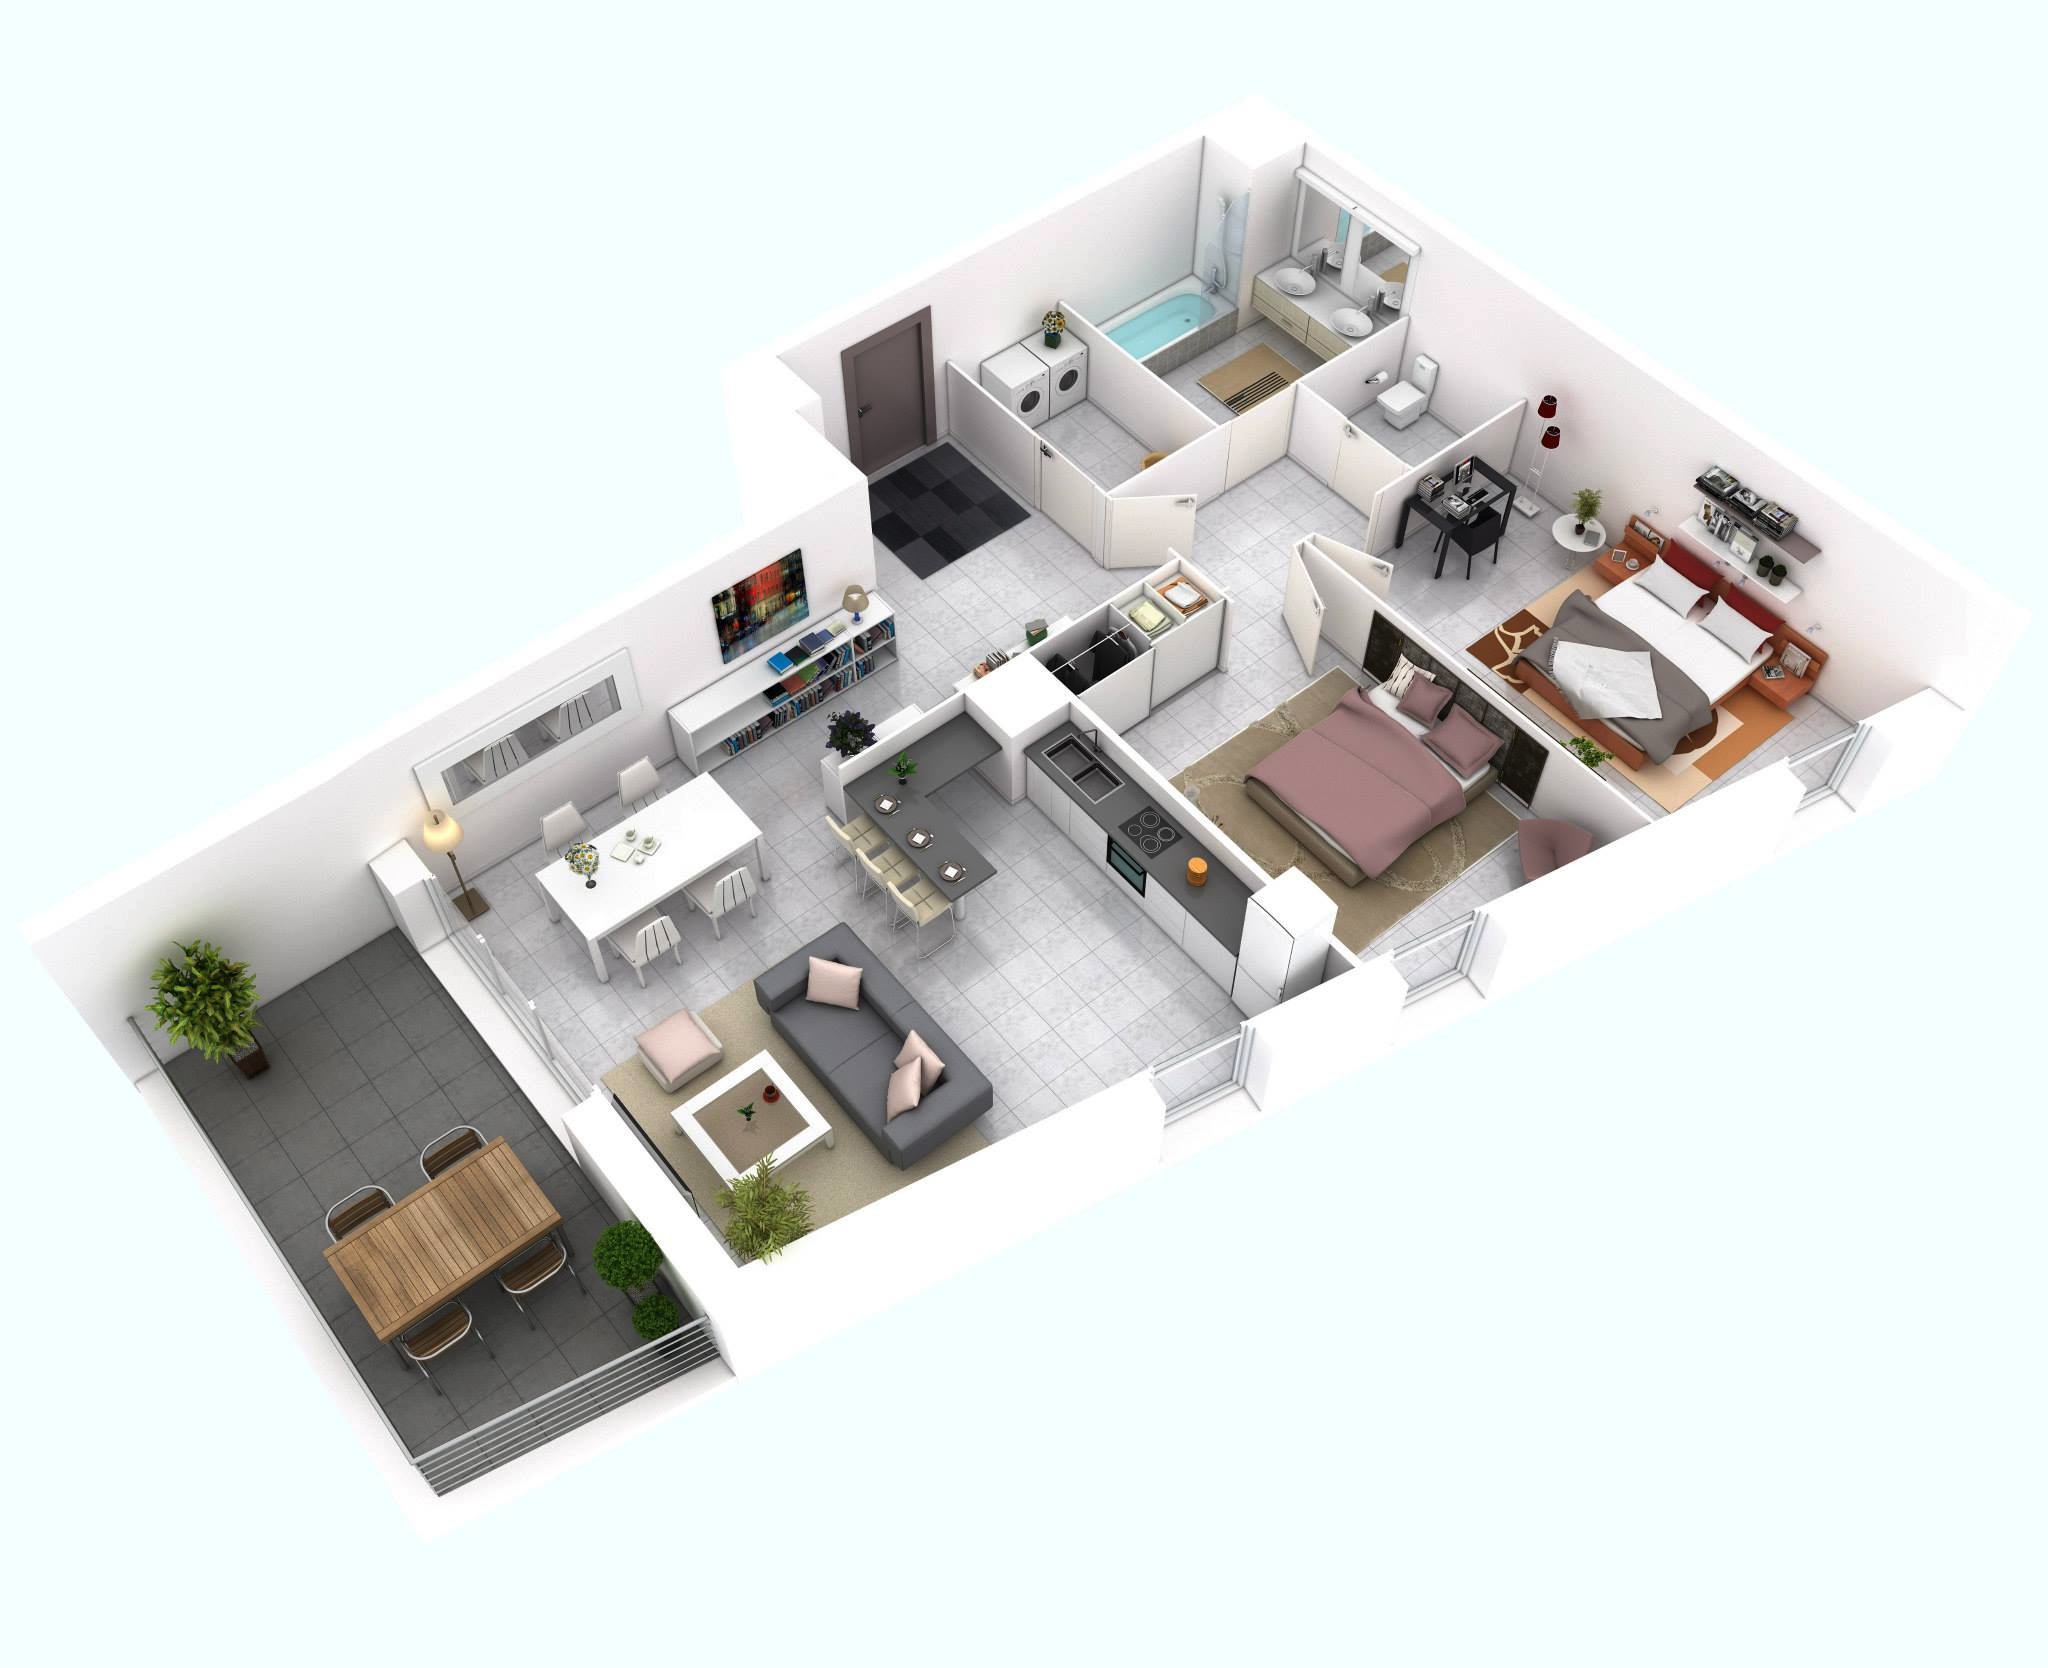 More Bedroom Floor Plans